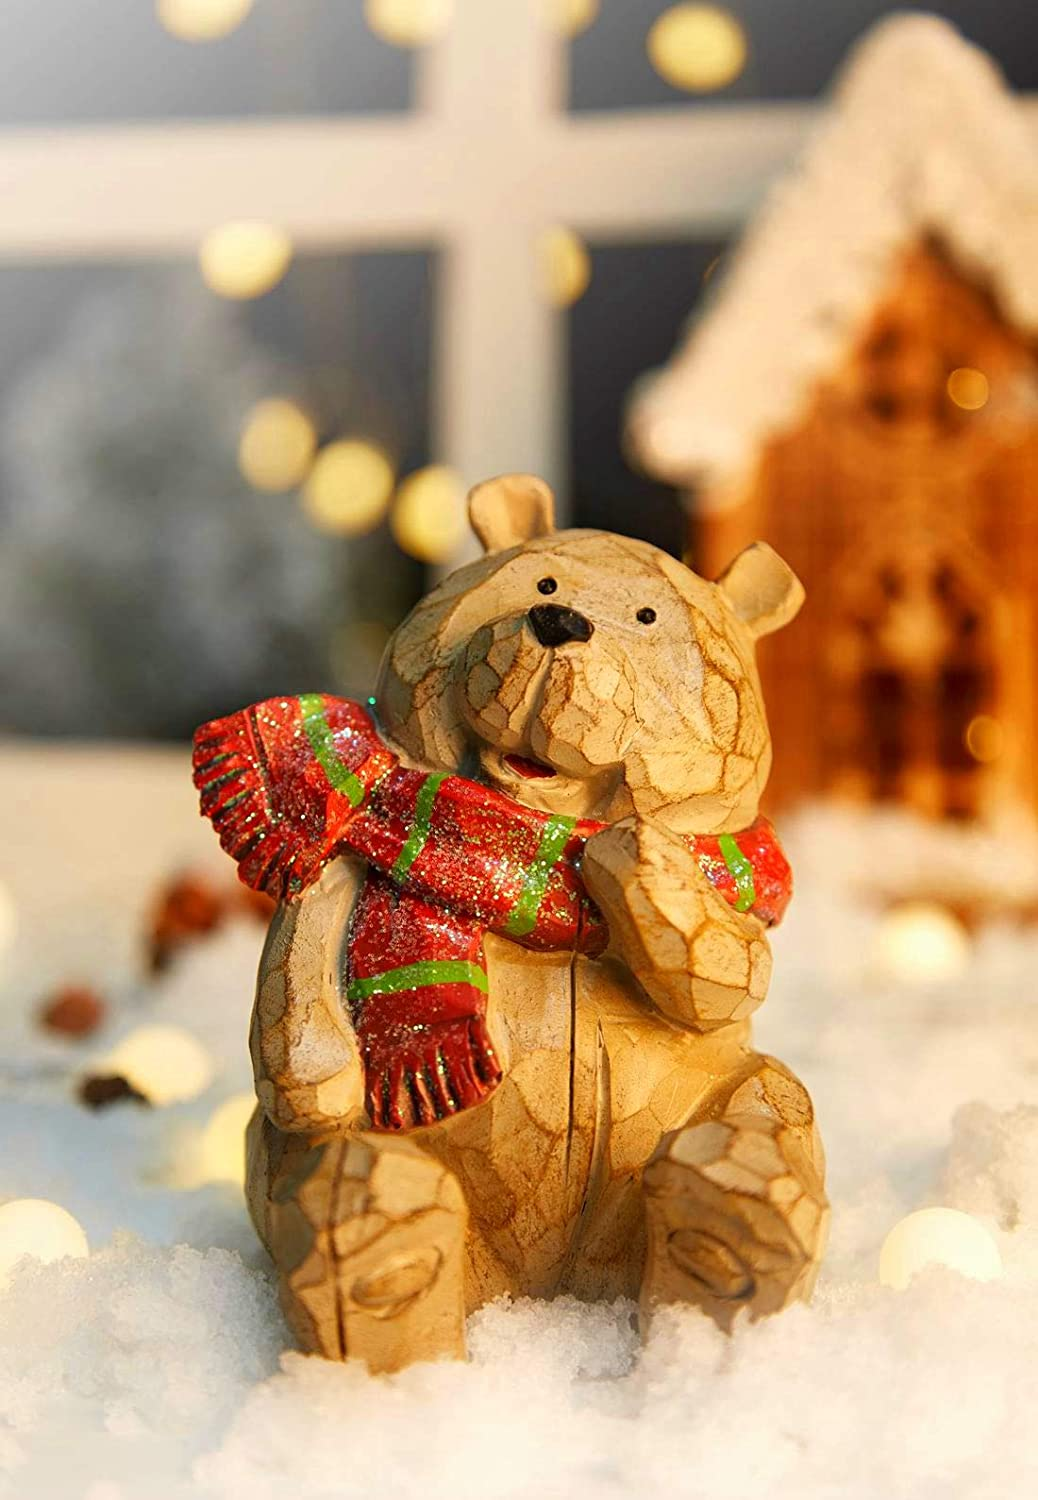 Floryden Wooden Carved Bear Christmas Decorations for Home,Resin Bear Figurine Decor Perfect for Christmas Table Decor, Shelf Decorations, Unique Lovely Bear Christmas Decorations